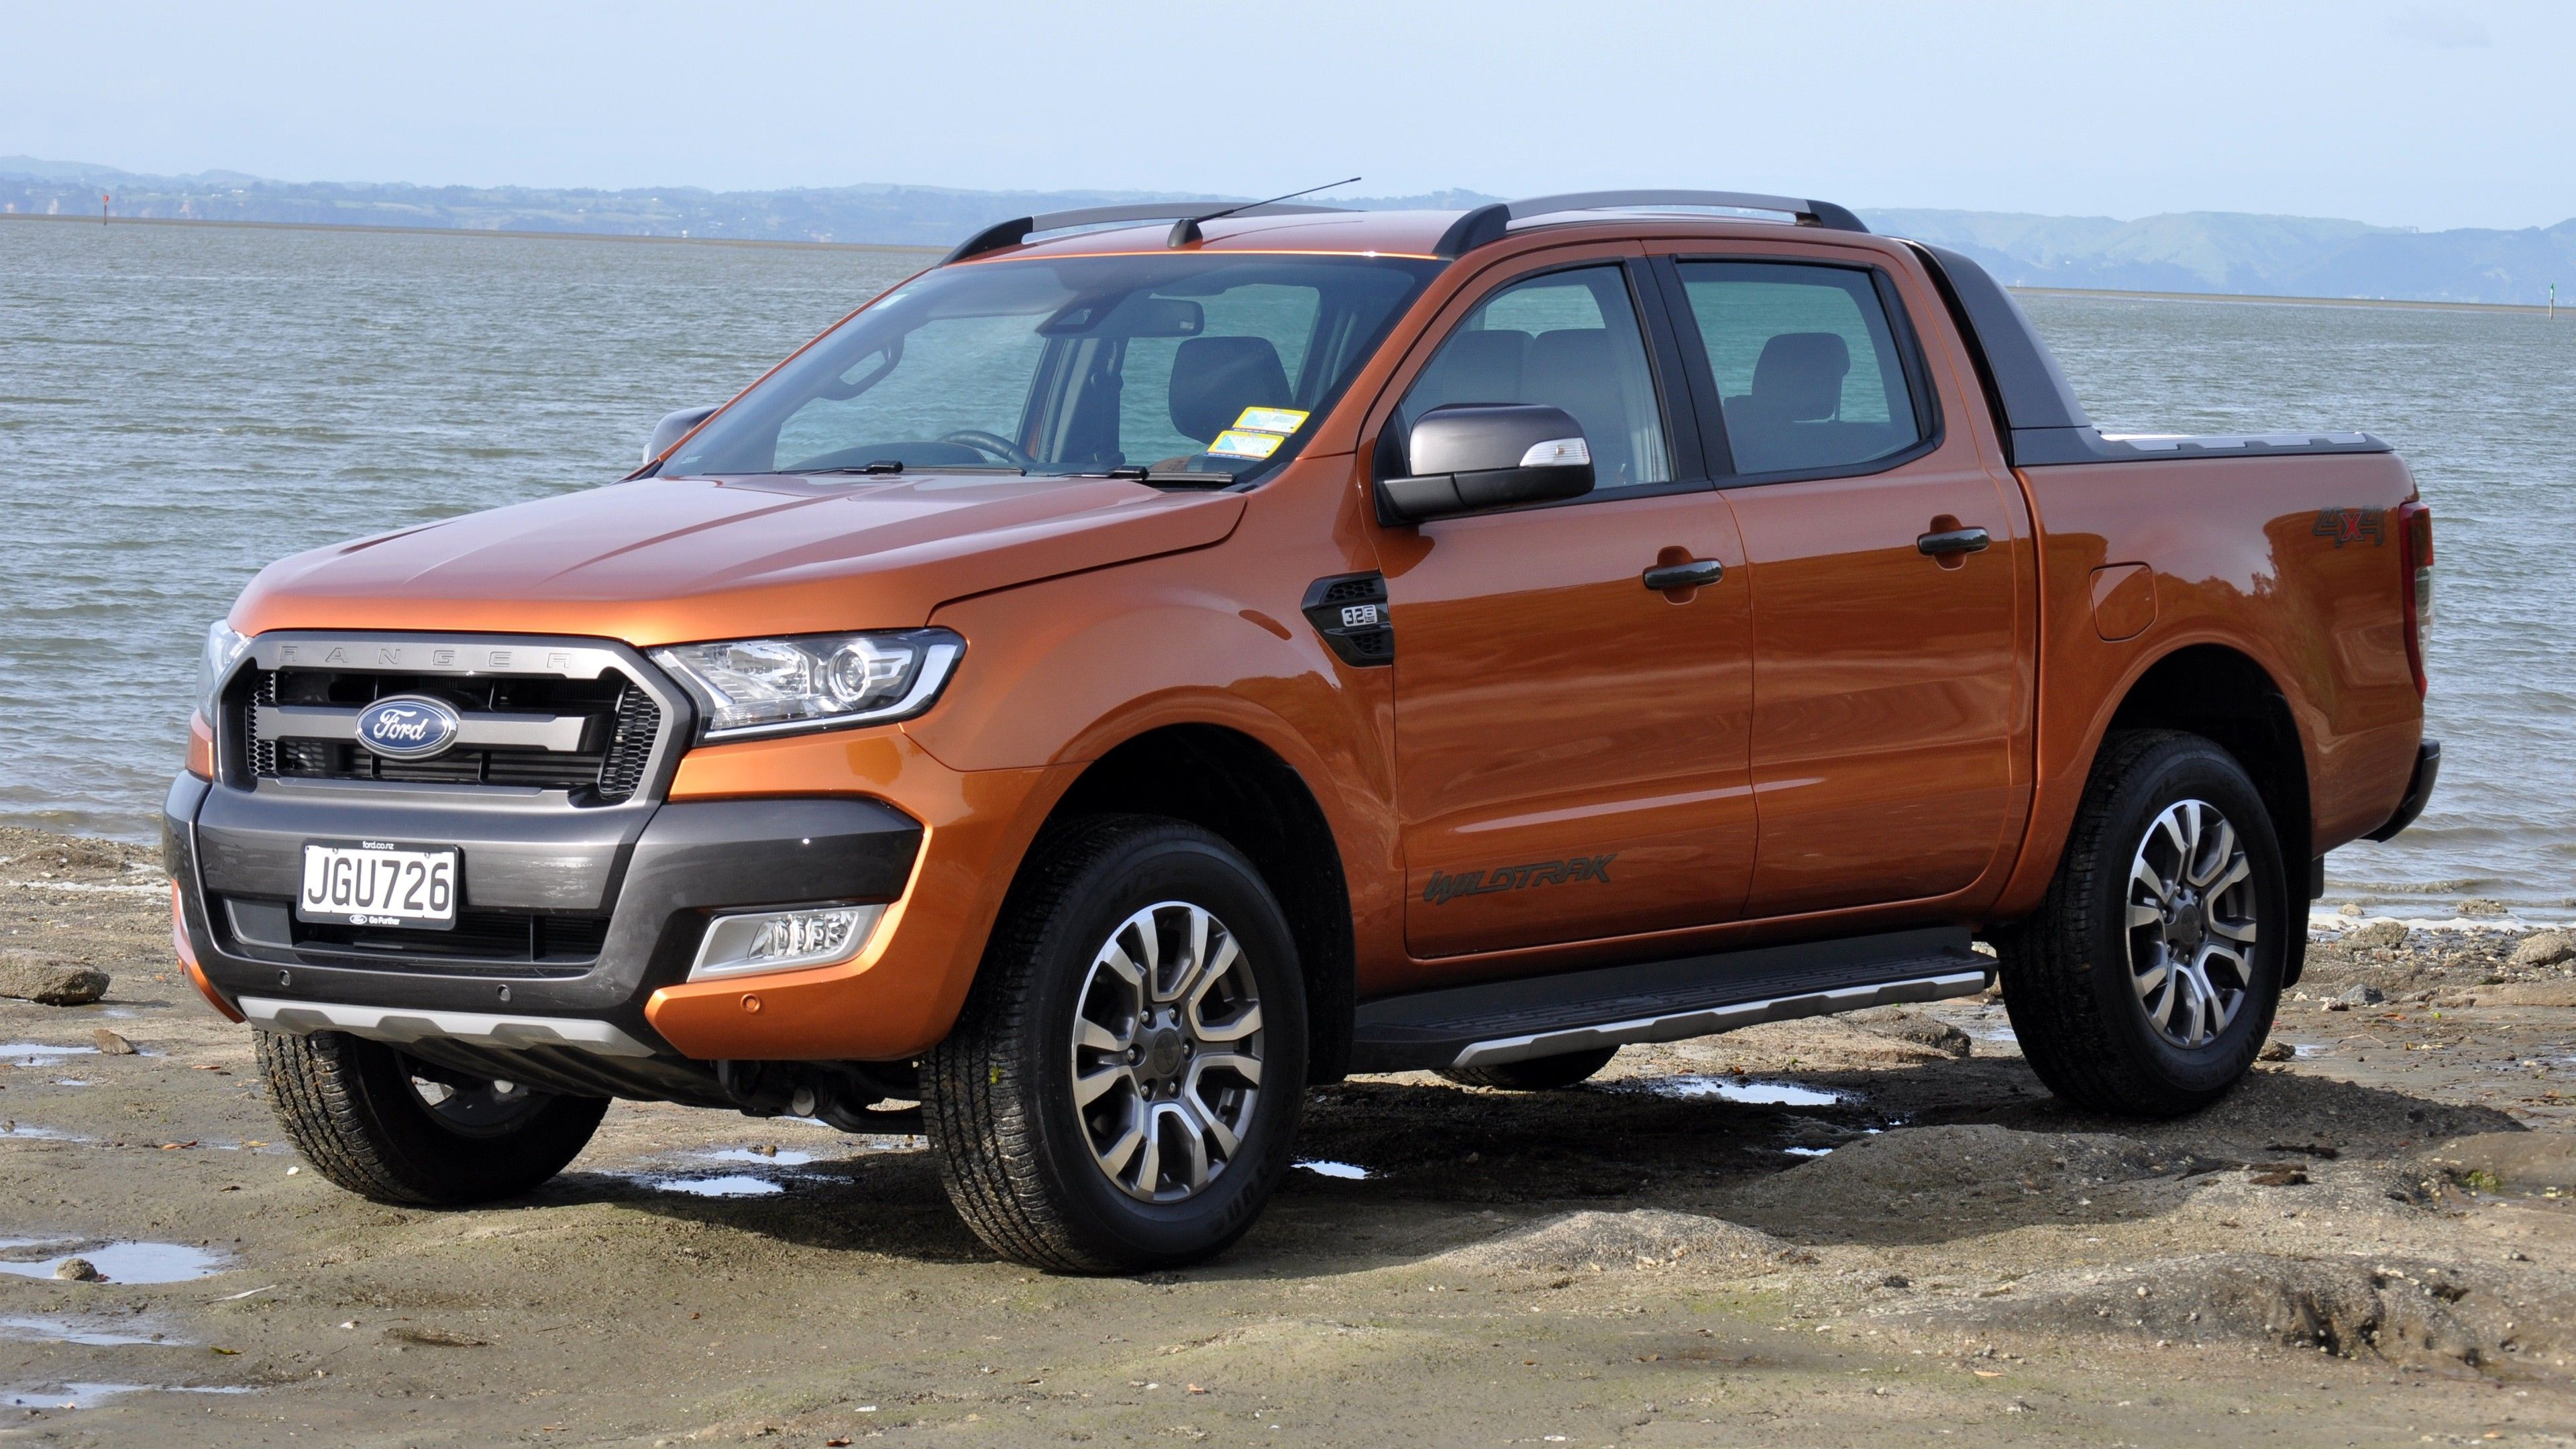 2016 Ford Ranger Wildtrak 4K Wallpaper | HD Car Wallpapers